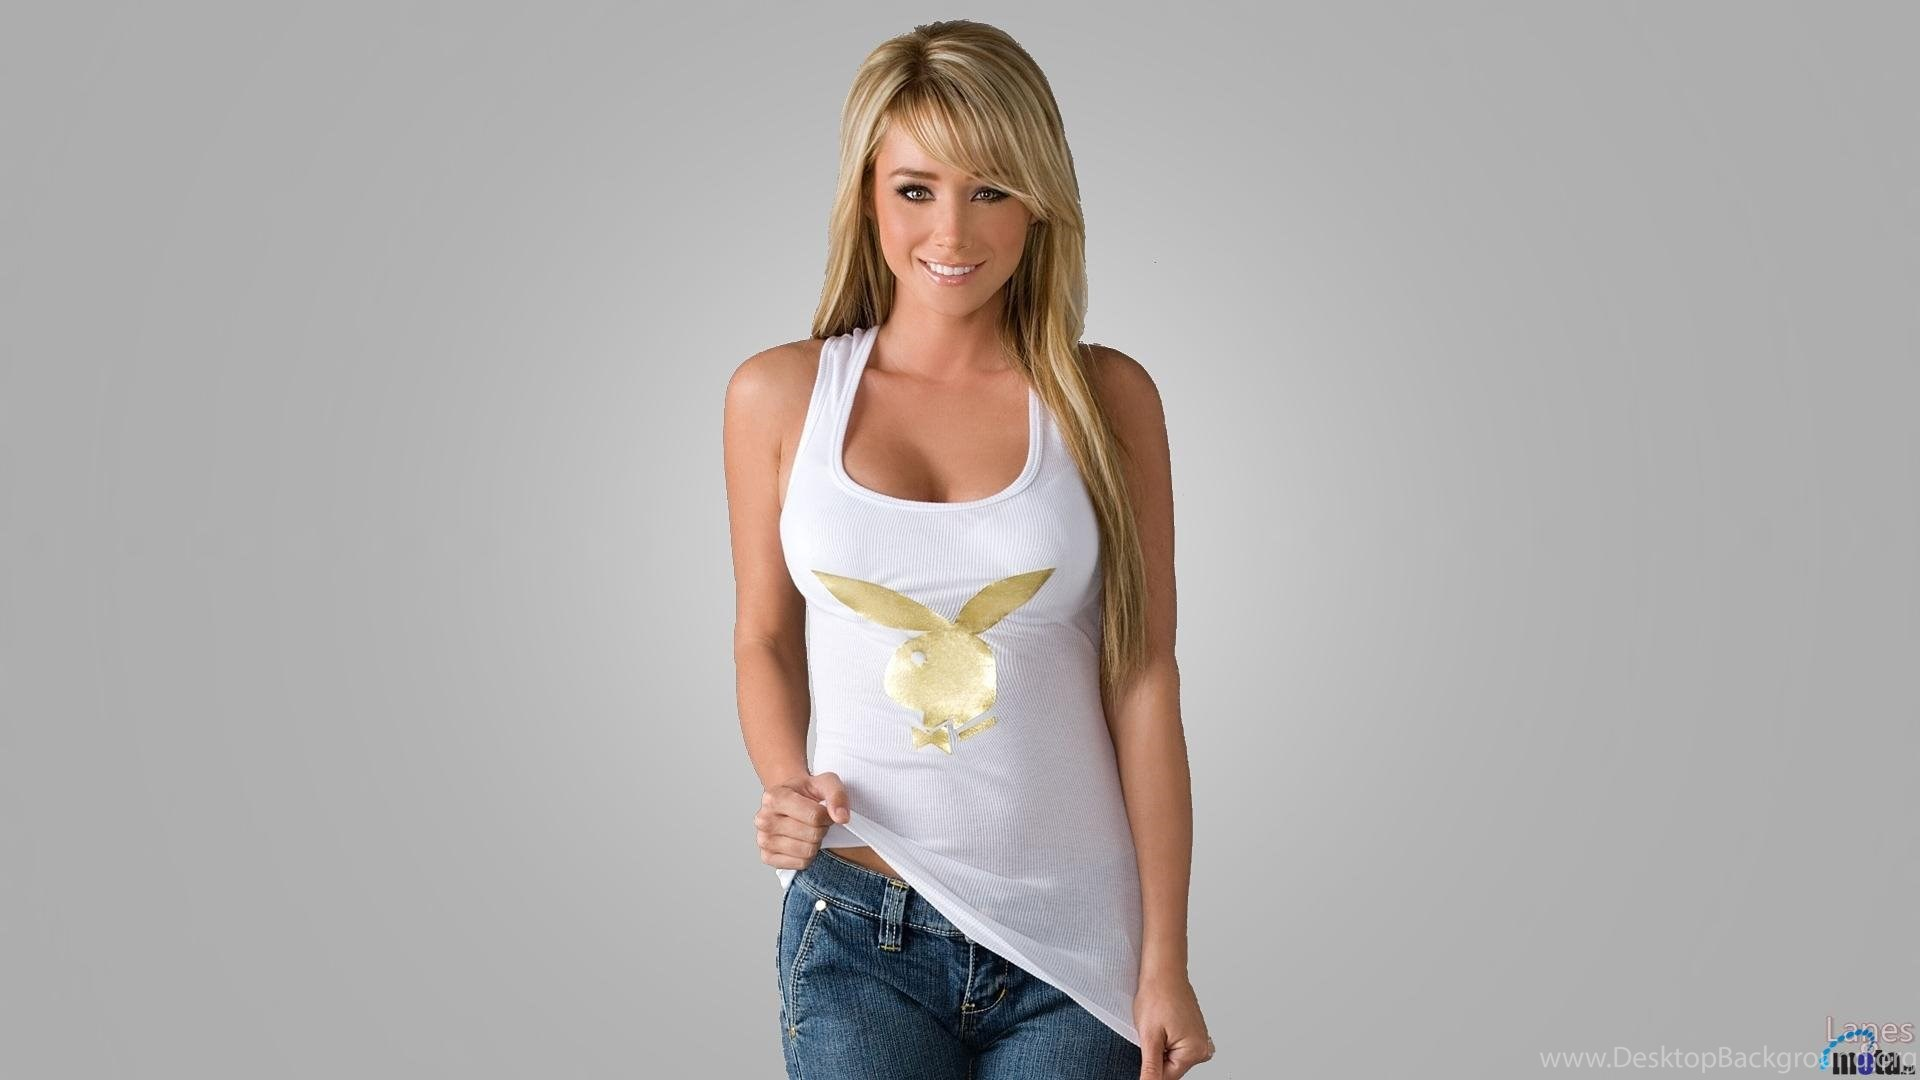 Download Wallpapers Sara Jean Underwood In Jeans And Shirt 1920 X